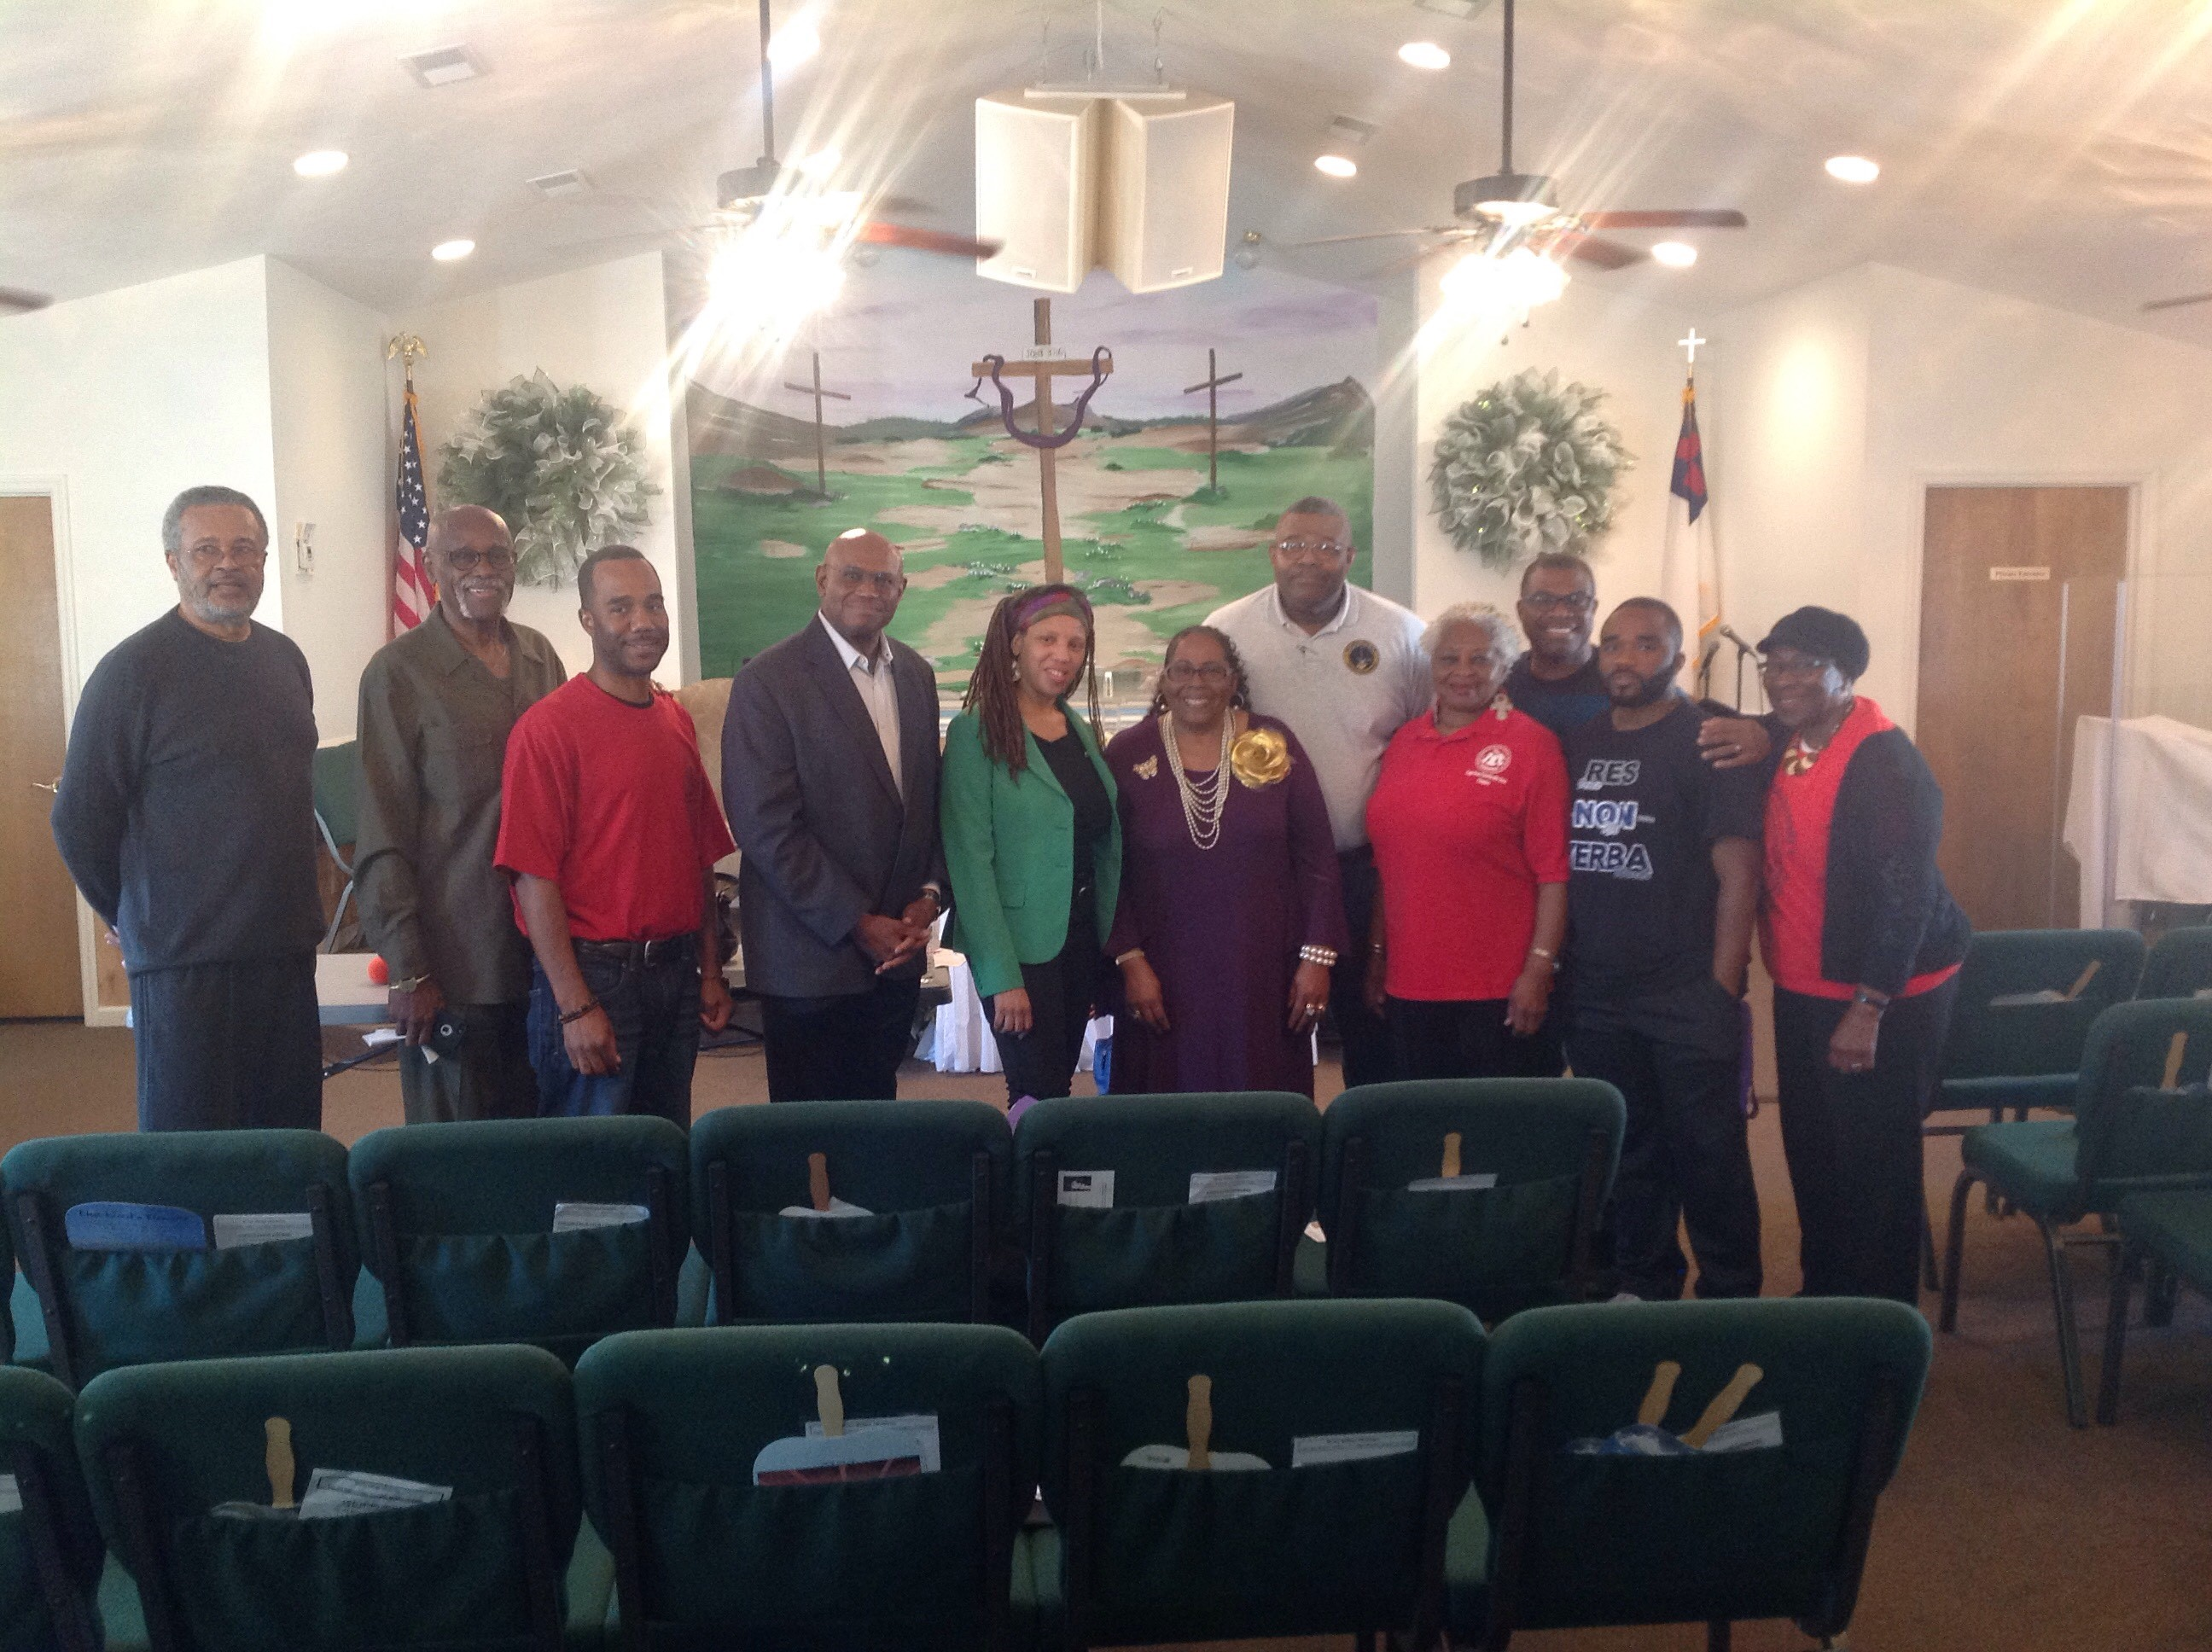 Members of the National Association of Black Social Workers pose for a photo on their day of service.